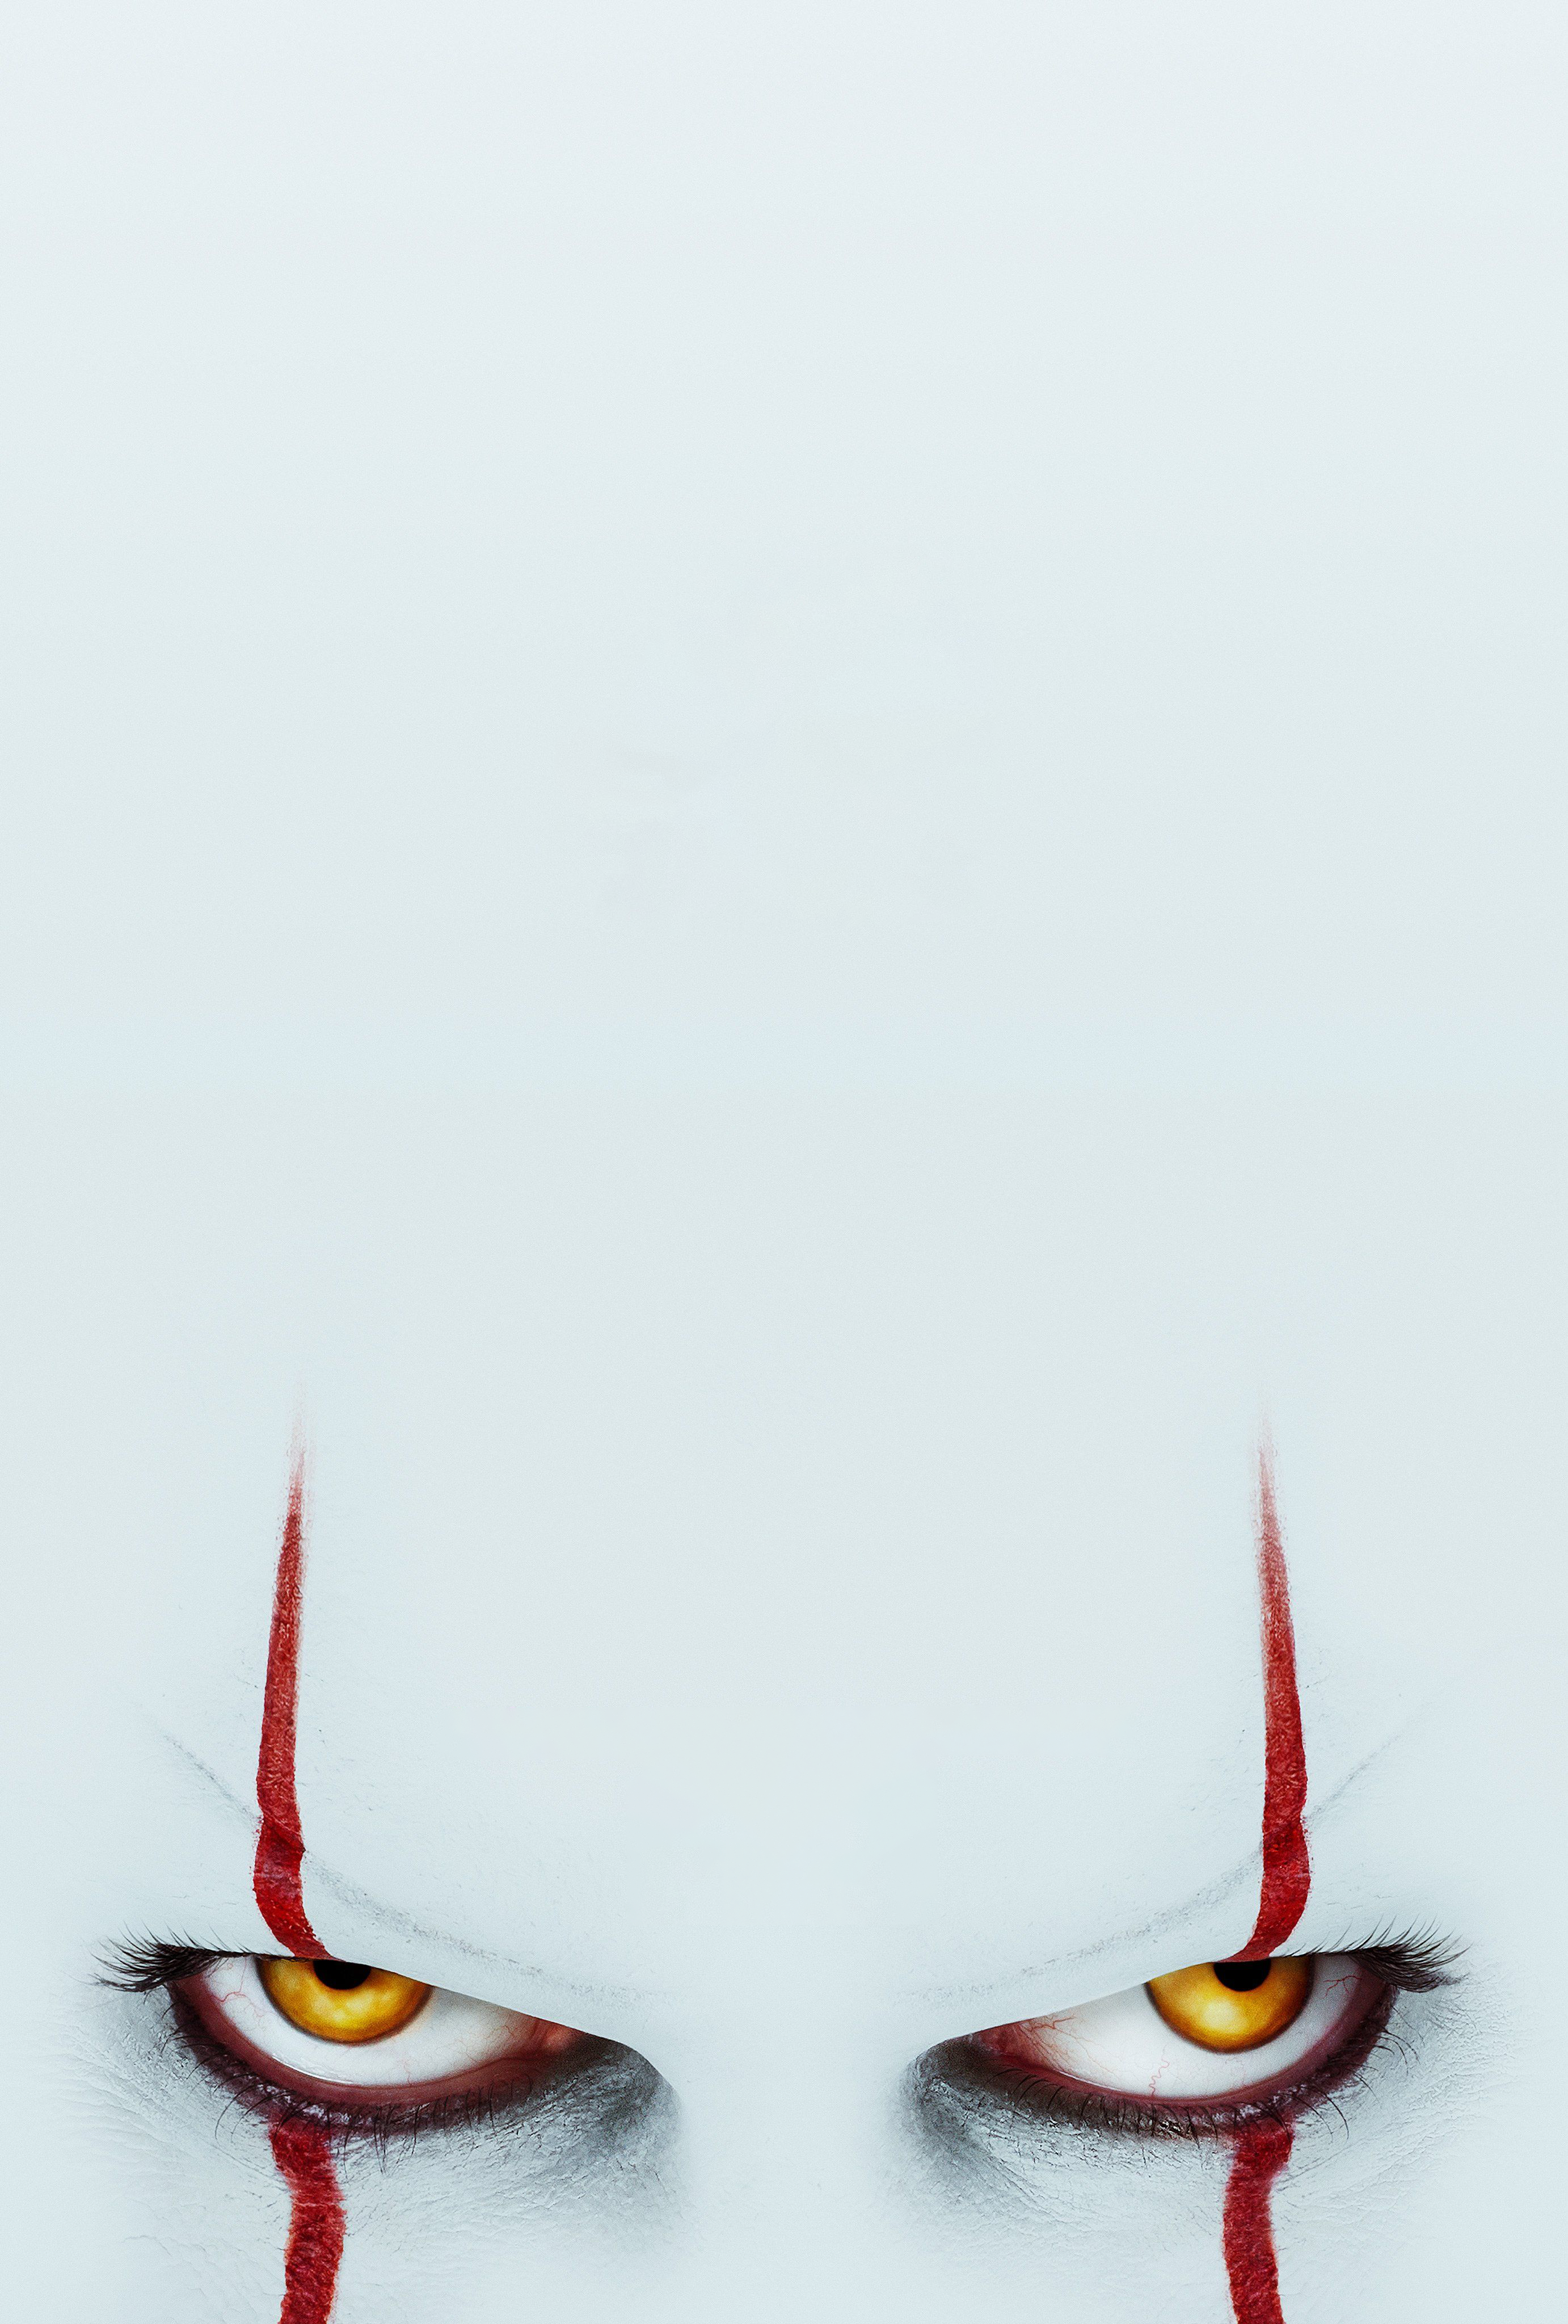 Here S A Super High Quality It Chapter Two Poster With No